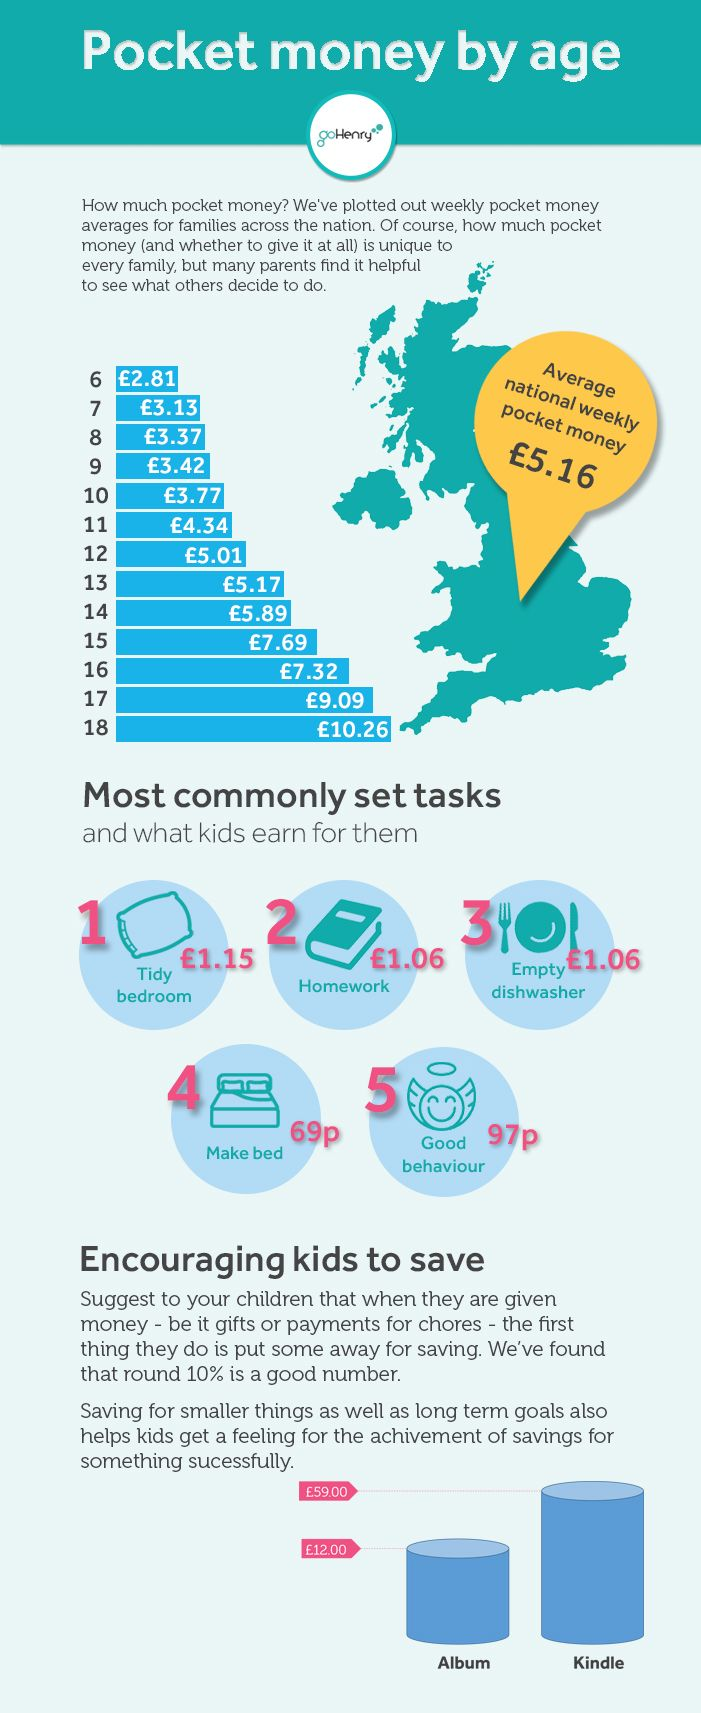 Find out what the going rate is amongst UK parents for some of the most popular tasks parents set their children. Plus see the average amounts of pocket money other parents have decided to give their children at different ages.